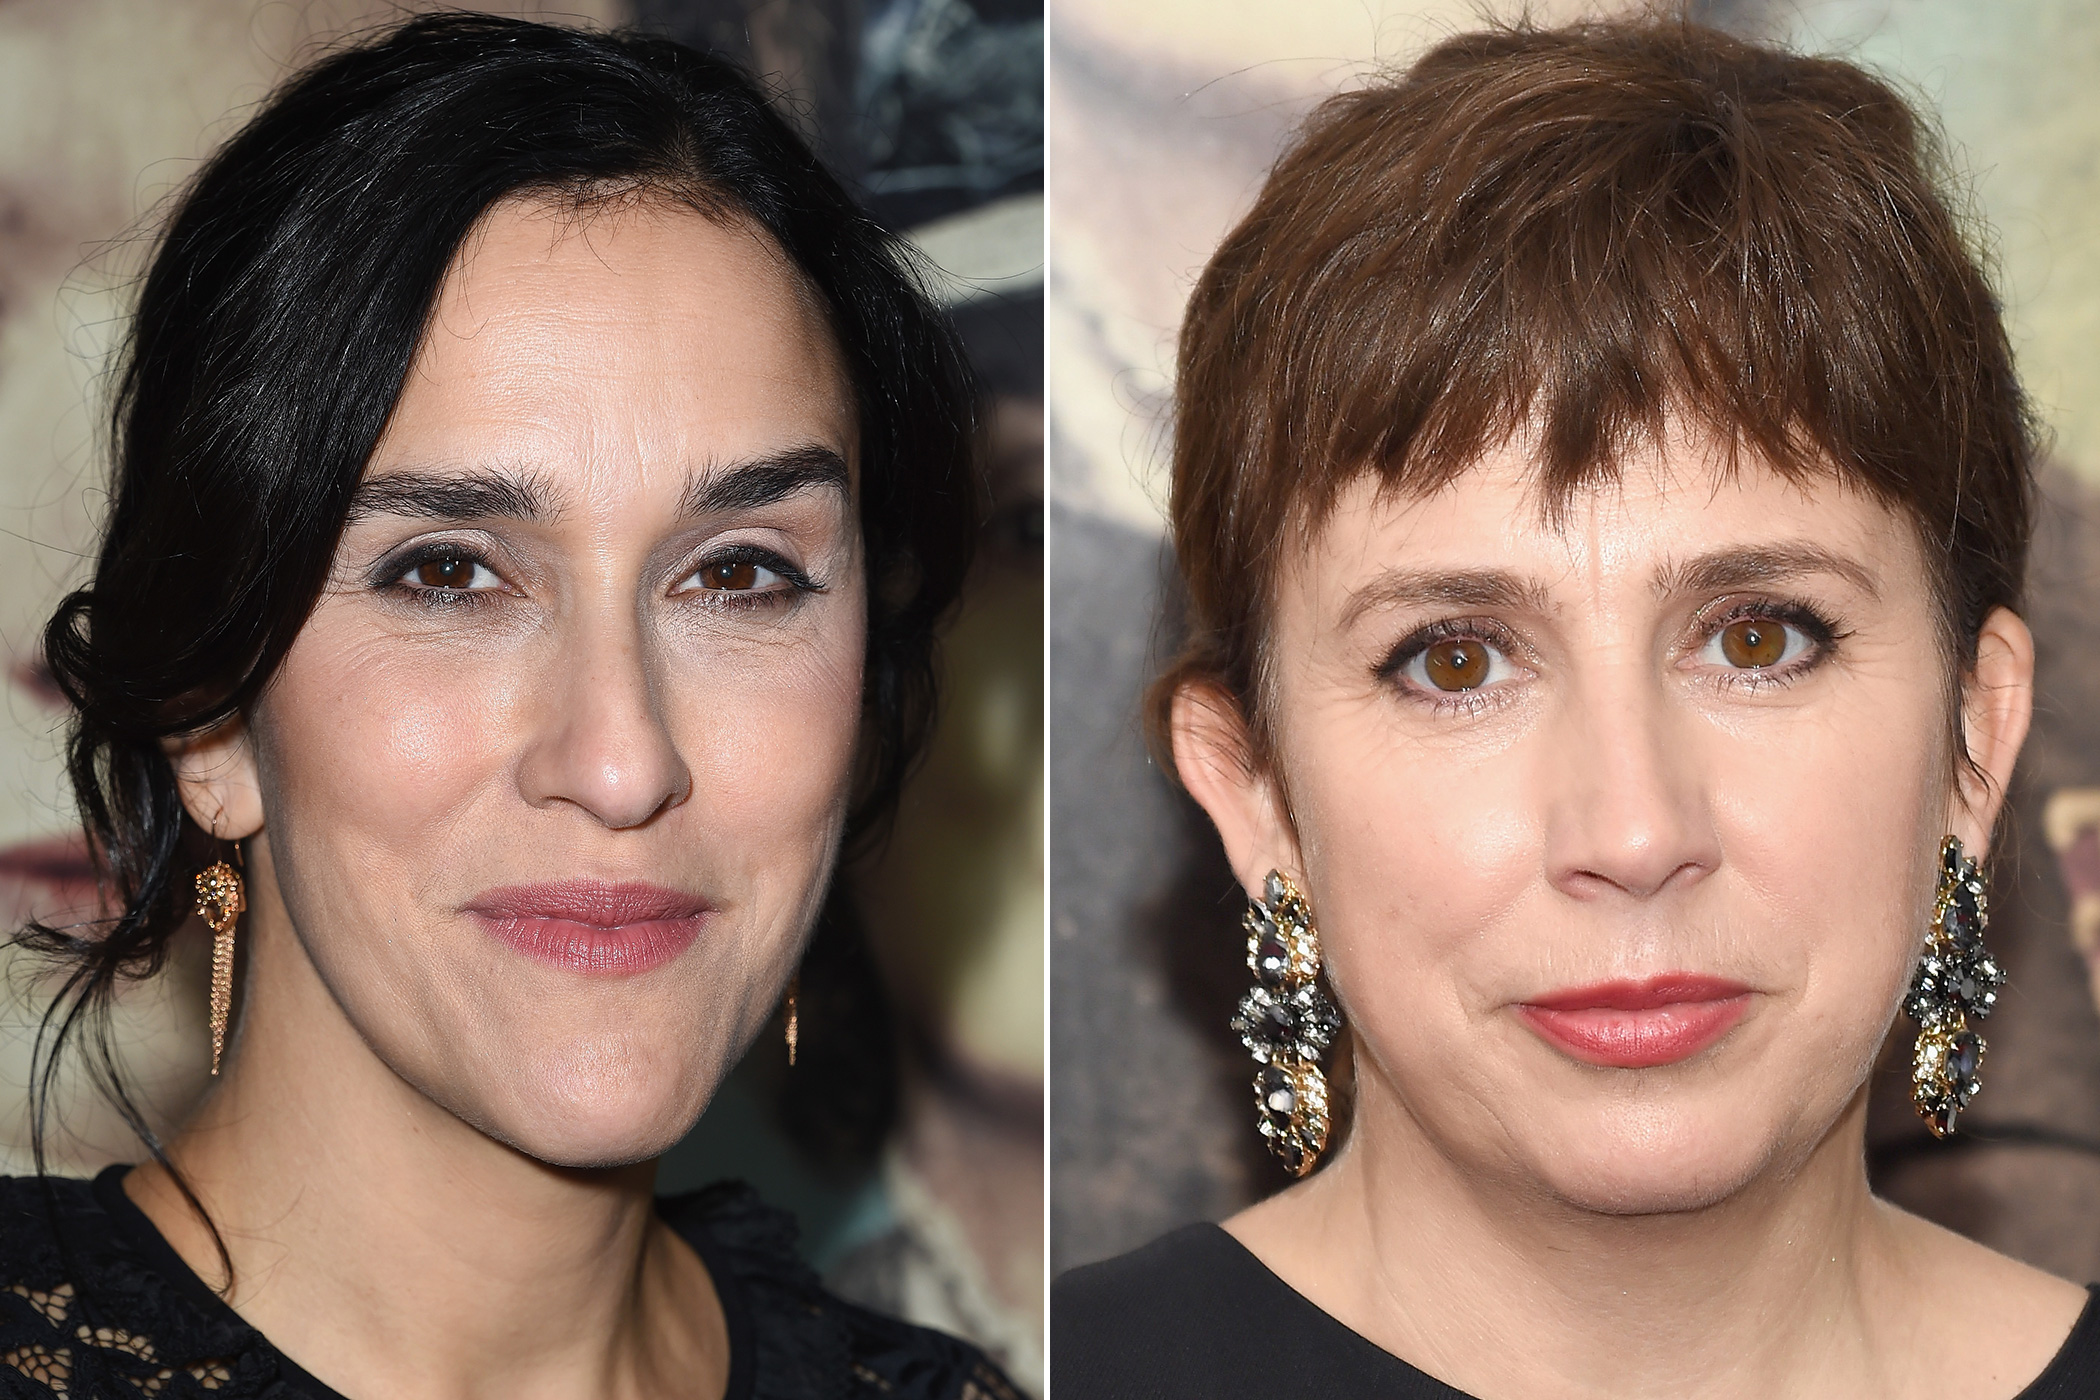 Sarah Gavron and Abi Morgan on Oct. 20, 2015 in Los Angeles.